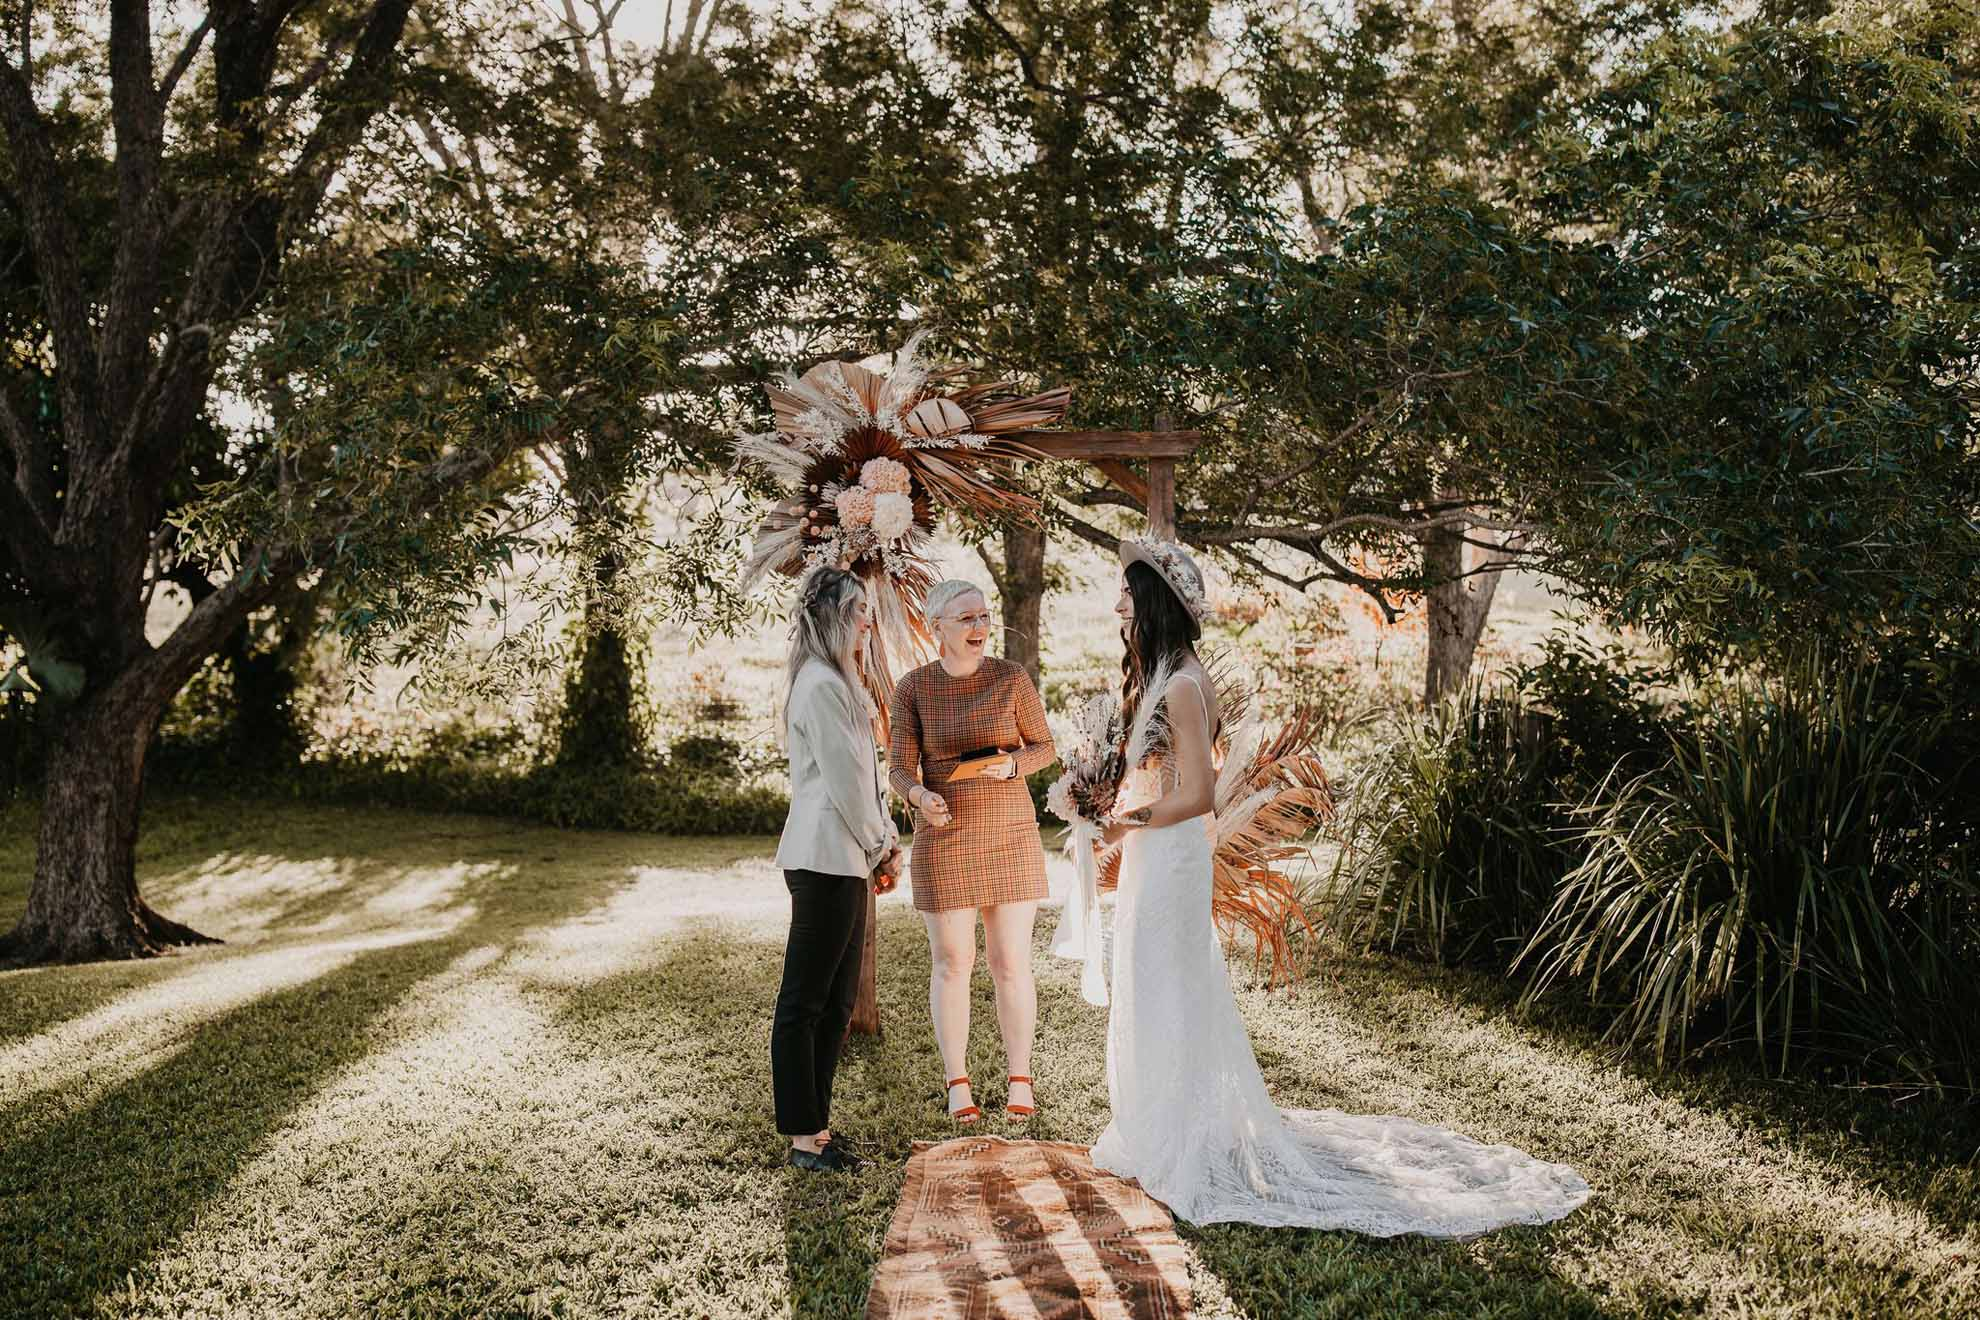 The Wild Hitcher wedding elopement celebrant Queensland Gold Coast lesbian gay same-sex lgbtq+ marriage Dancing With Her magazine (1)